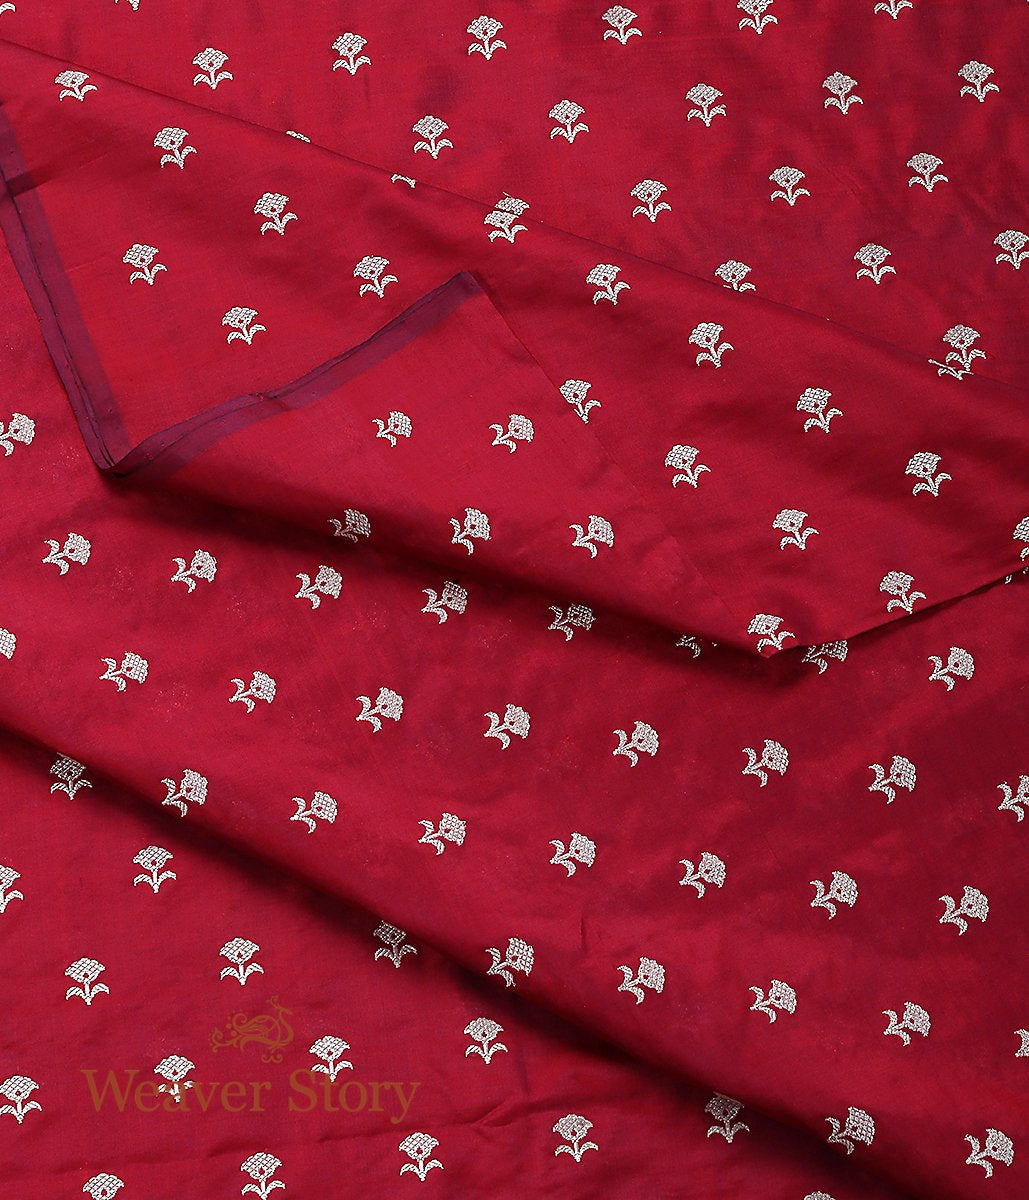 Handwoven Maroon Leaf Booti Fabric in Katan Silk